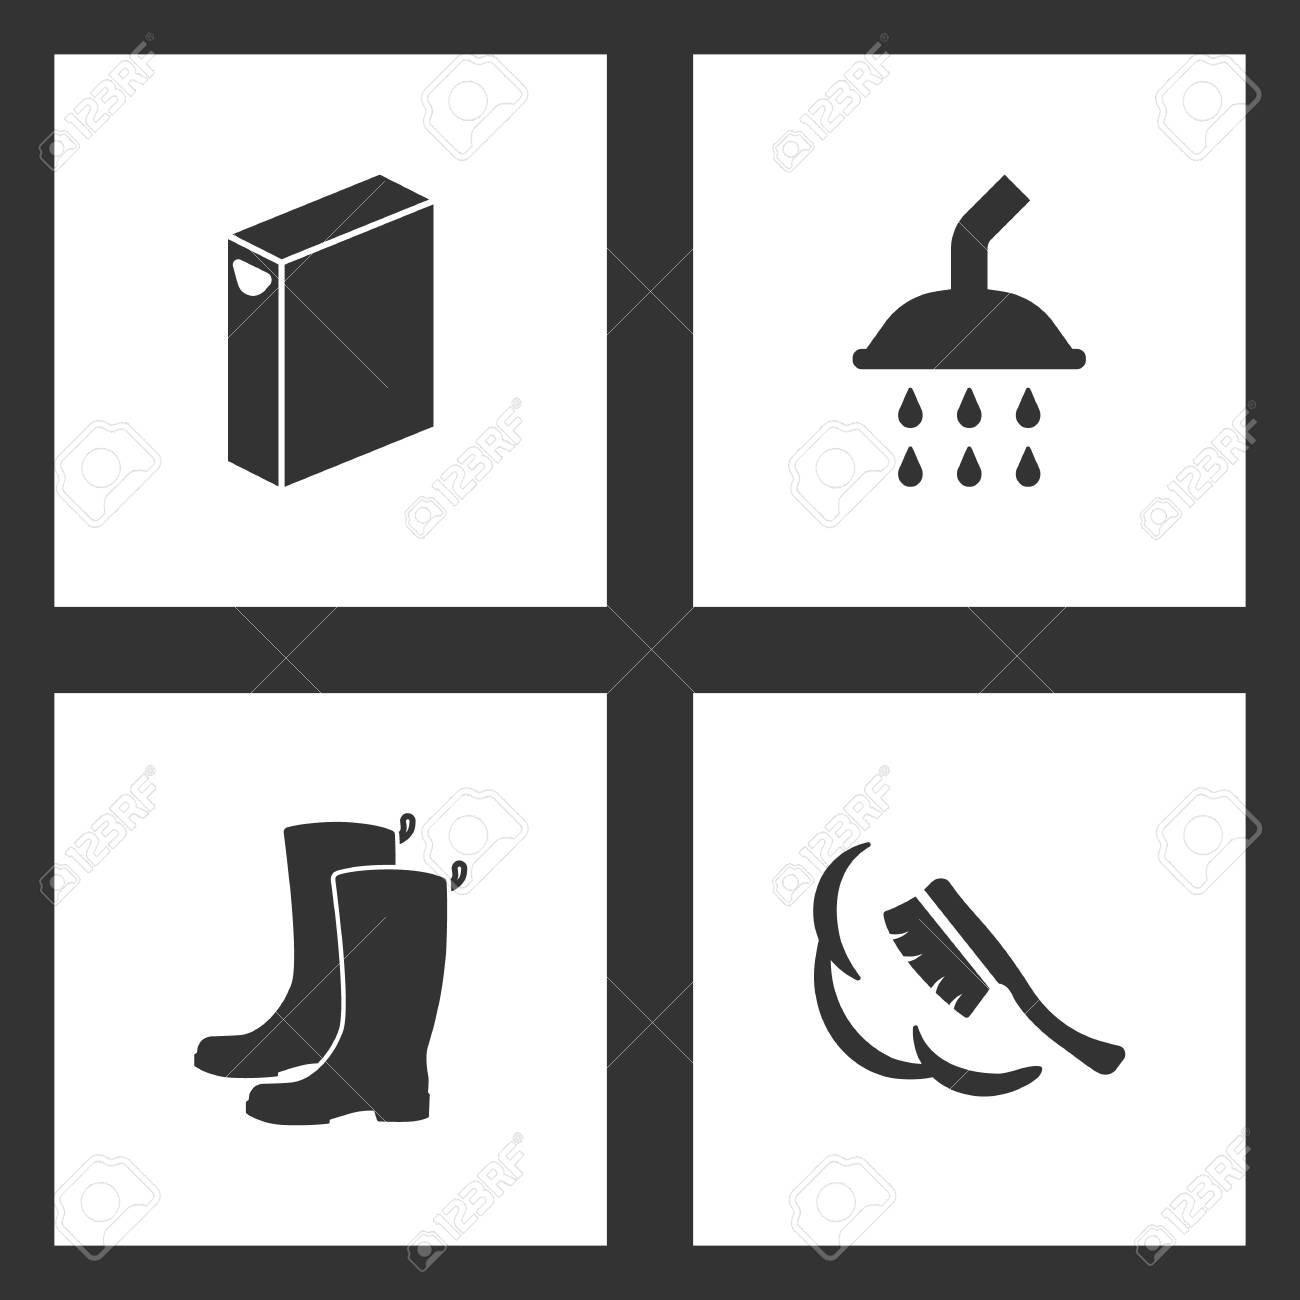 5734171b19 Vector - Vector Illustration Set Cleaning Icons. Elements of Washing powder  box